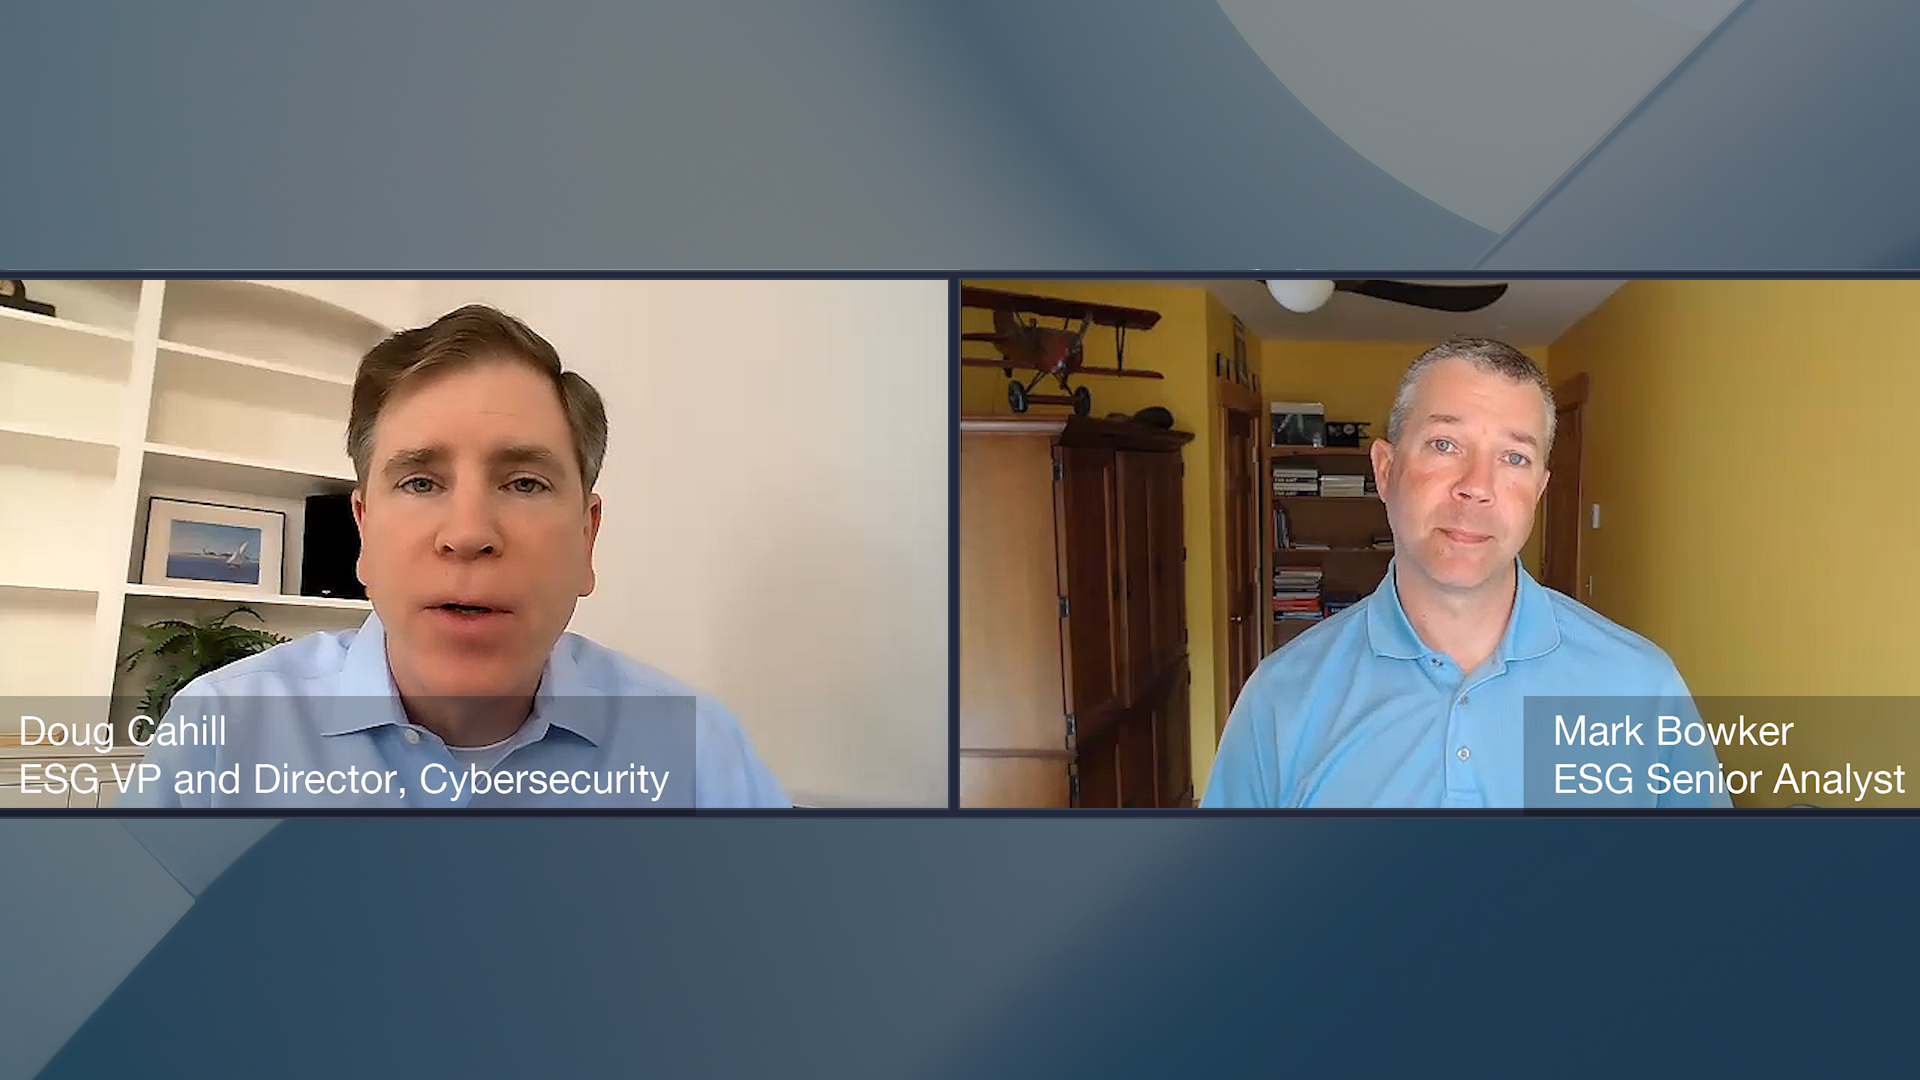 ESG360 Video: Distributed Cloud Research